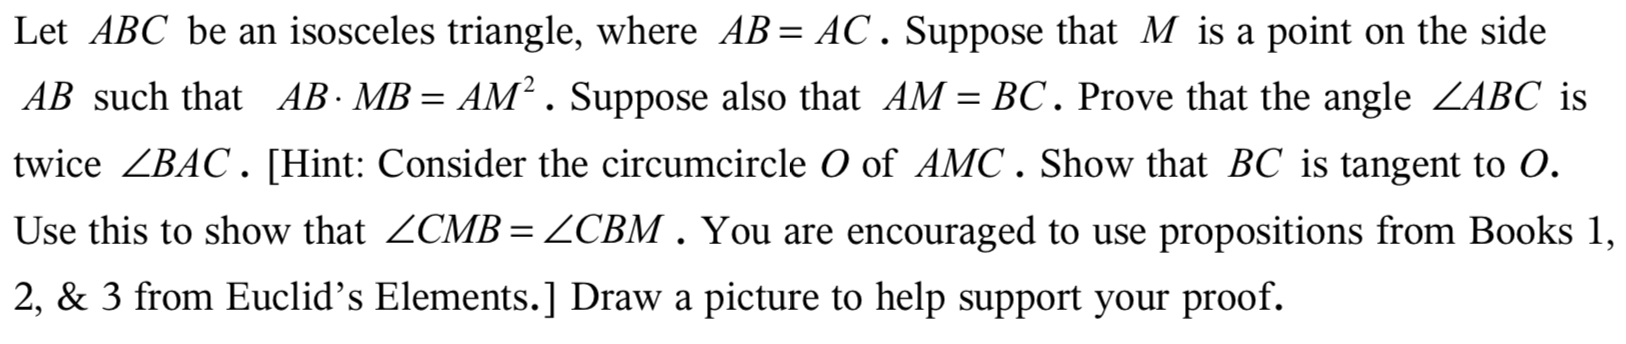 Let ABC be an isosceles triangle, where AB AC. Suppose that M is a point on the side AB such that AB- MB = AM2. Suppose also that AM = BC. Prove that the angle ZABC is twice ZBAC. [Hint: Consider the circumcircle O of AMC. Show that BC is tangent to O. Use this to show that ZCMB = ZCBM . You are encouraged to use propositions from Books 1, 2, & 3 from Euclid's Elements.] Draw a picture to help support your proof.